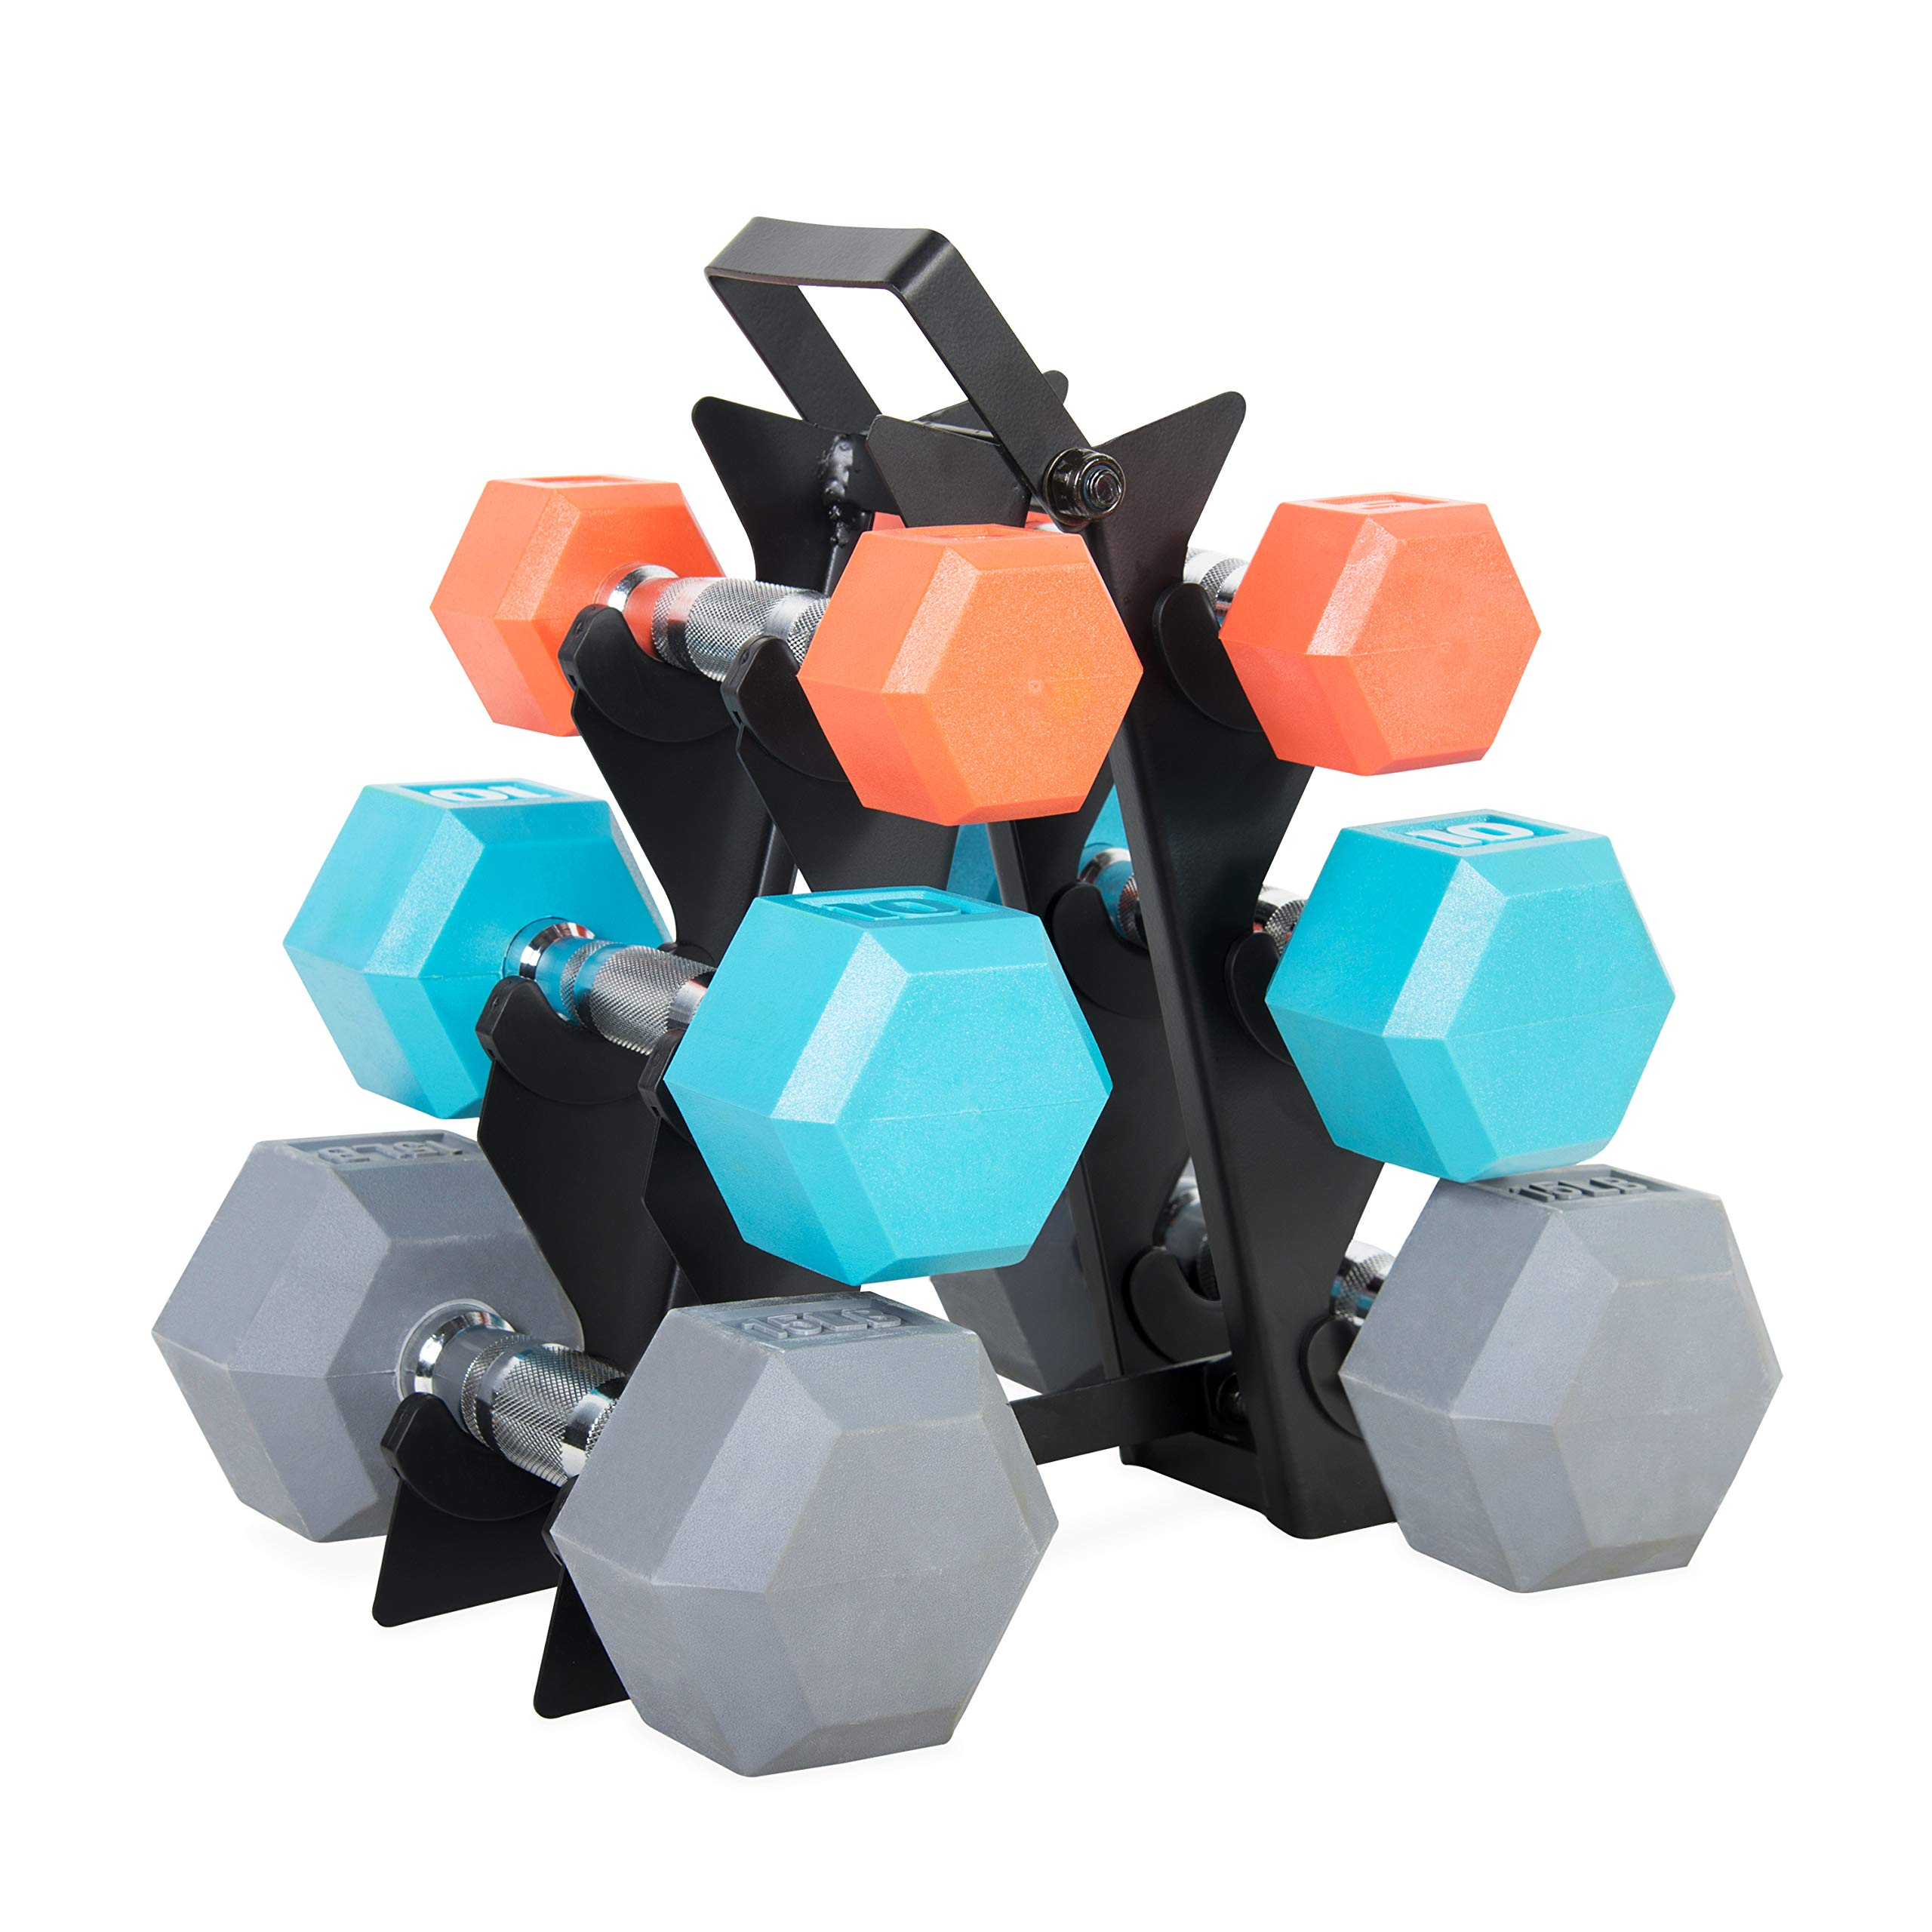 WF Athletic Supply Dumbbell Set with Storage Rack (60 LB Color Coated Dumbbell Set) by WF Athletic Supply